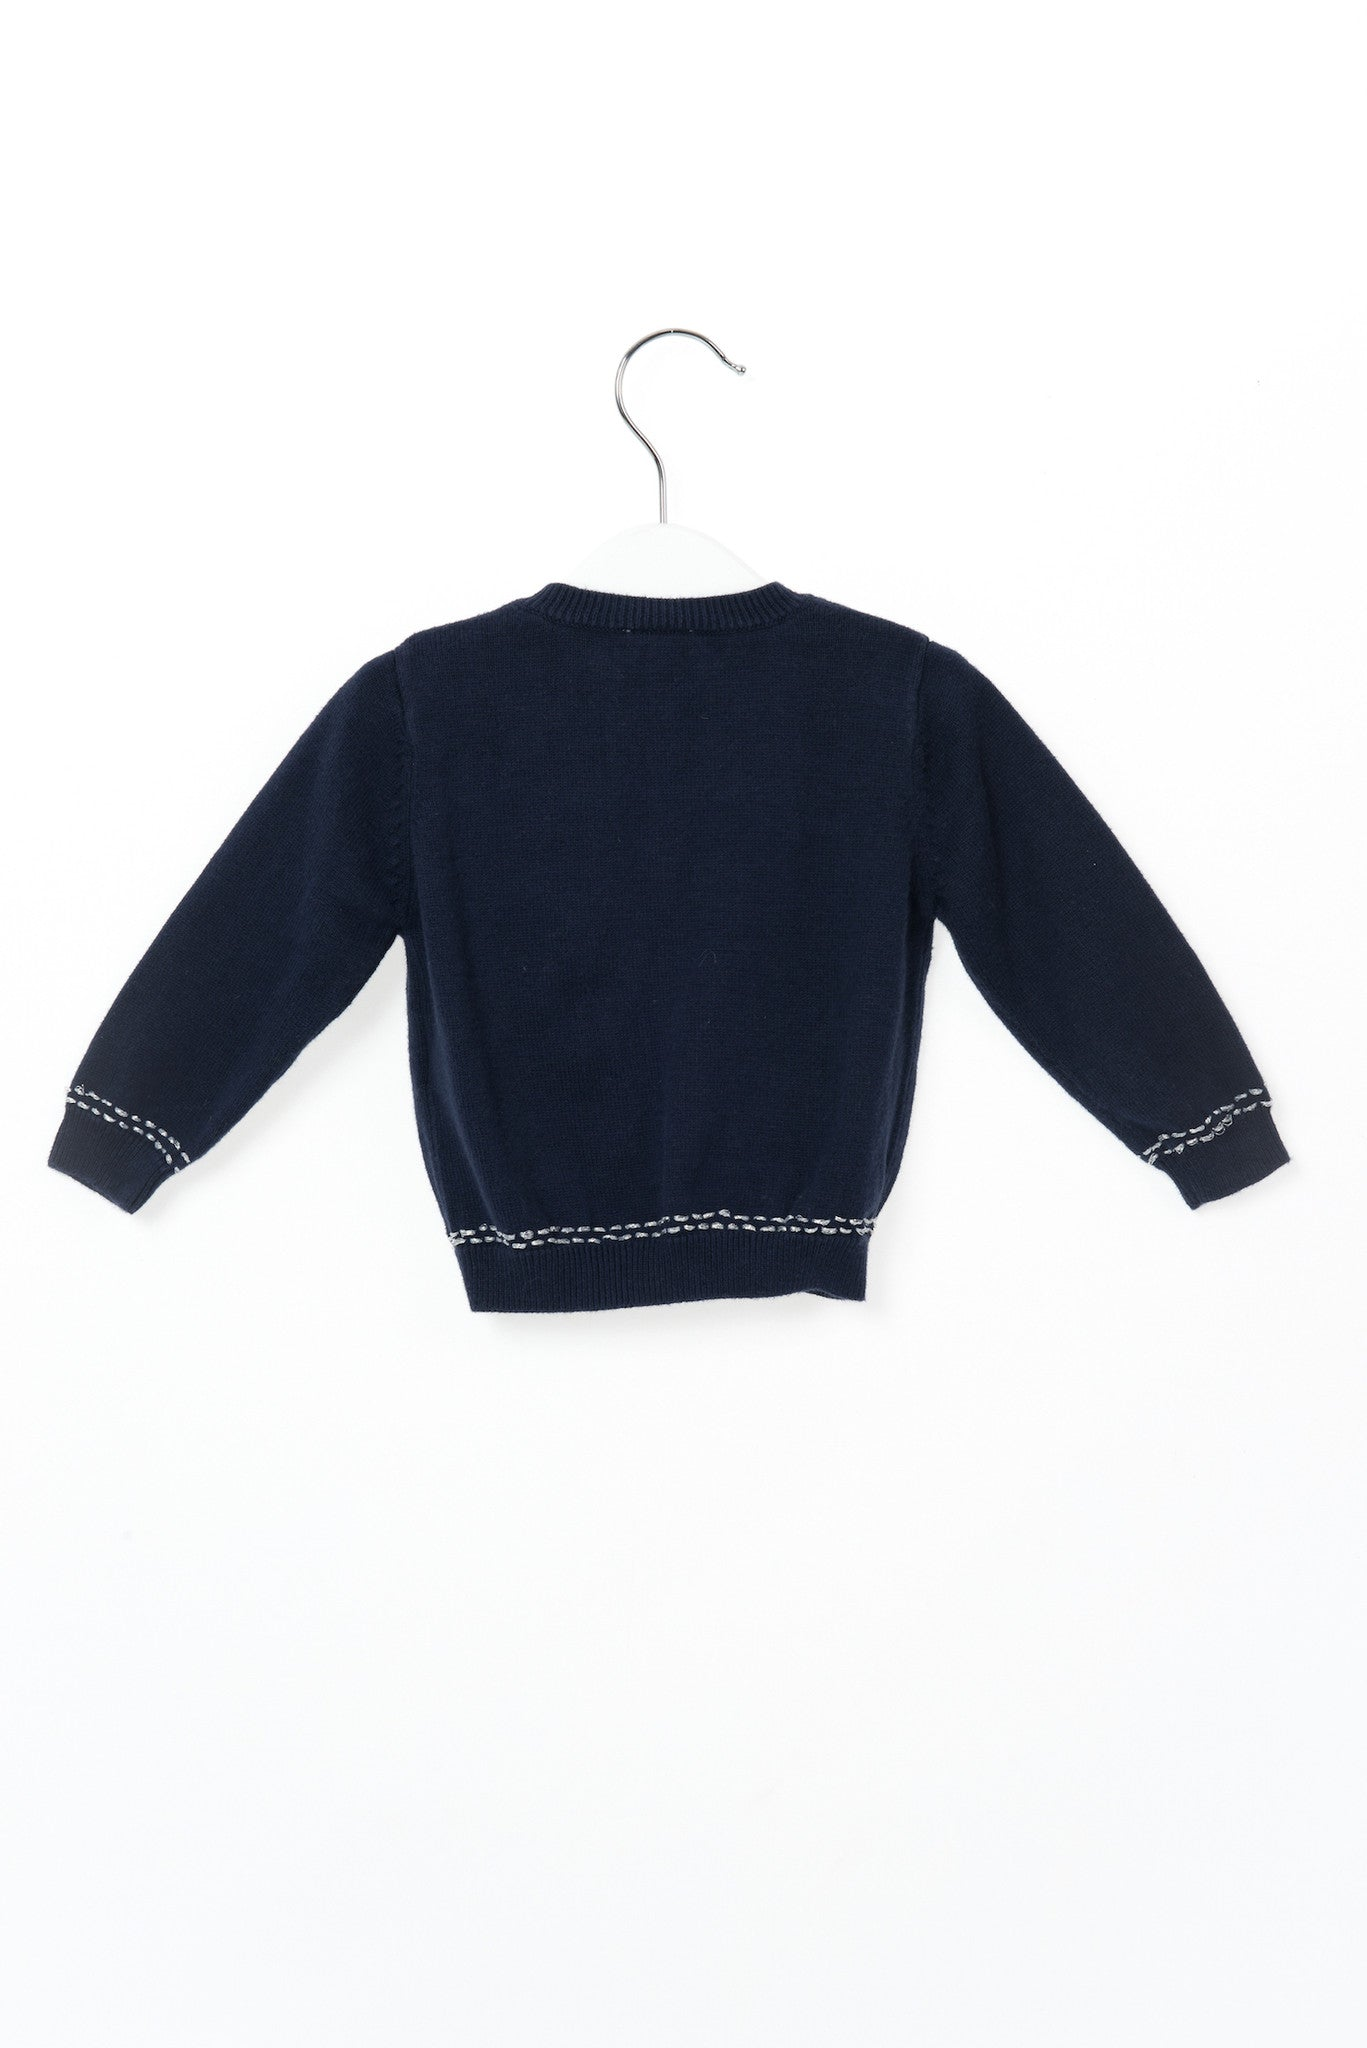 10001320~Cardigan 3-6M, Seed at Retykle - Online Baby & Kids Clothing Up to 90% Off